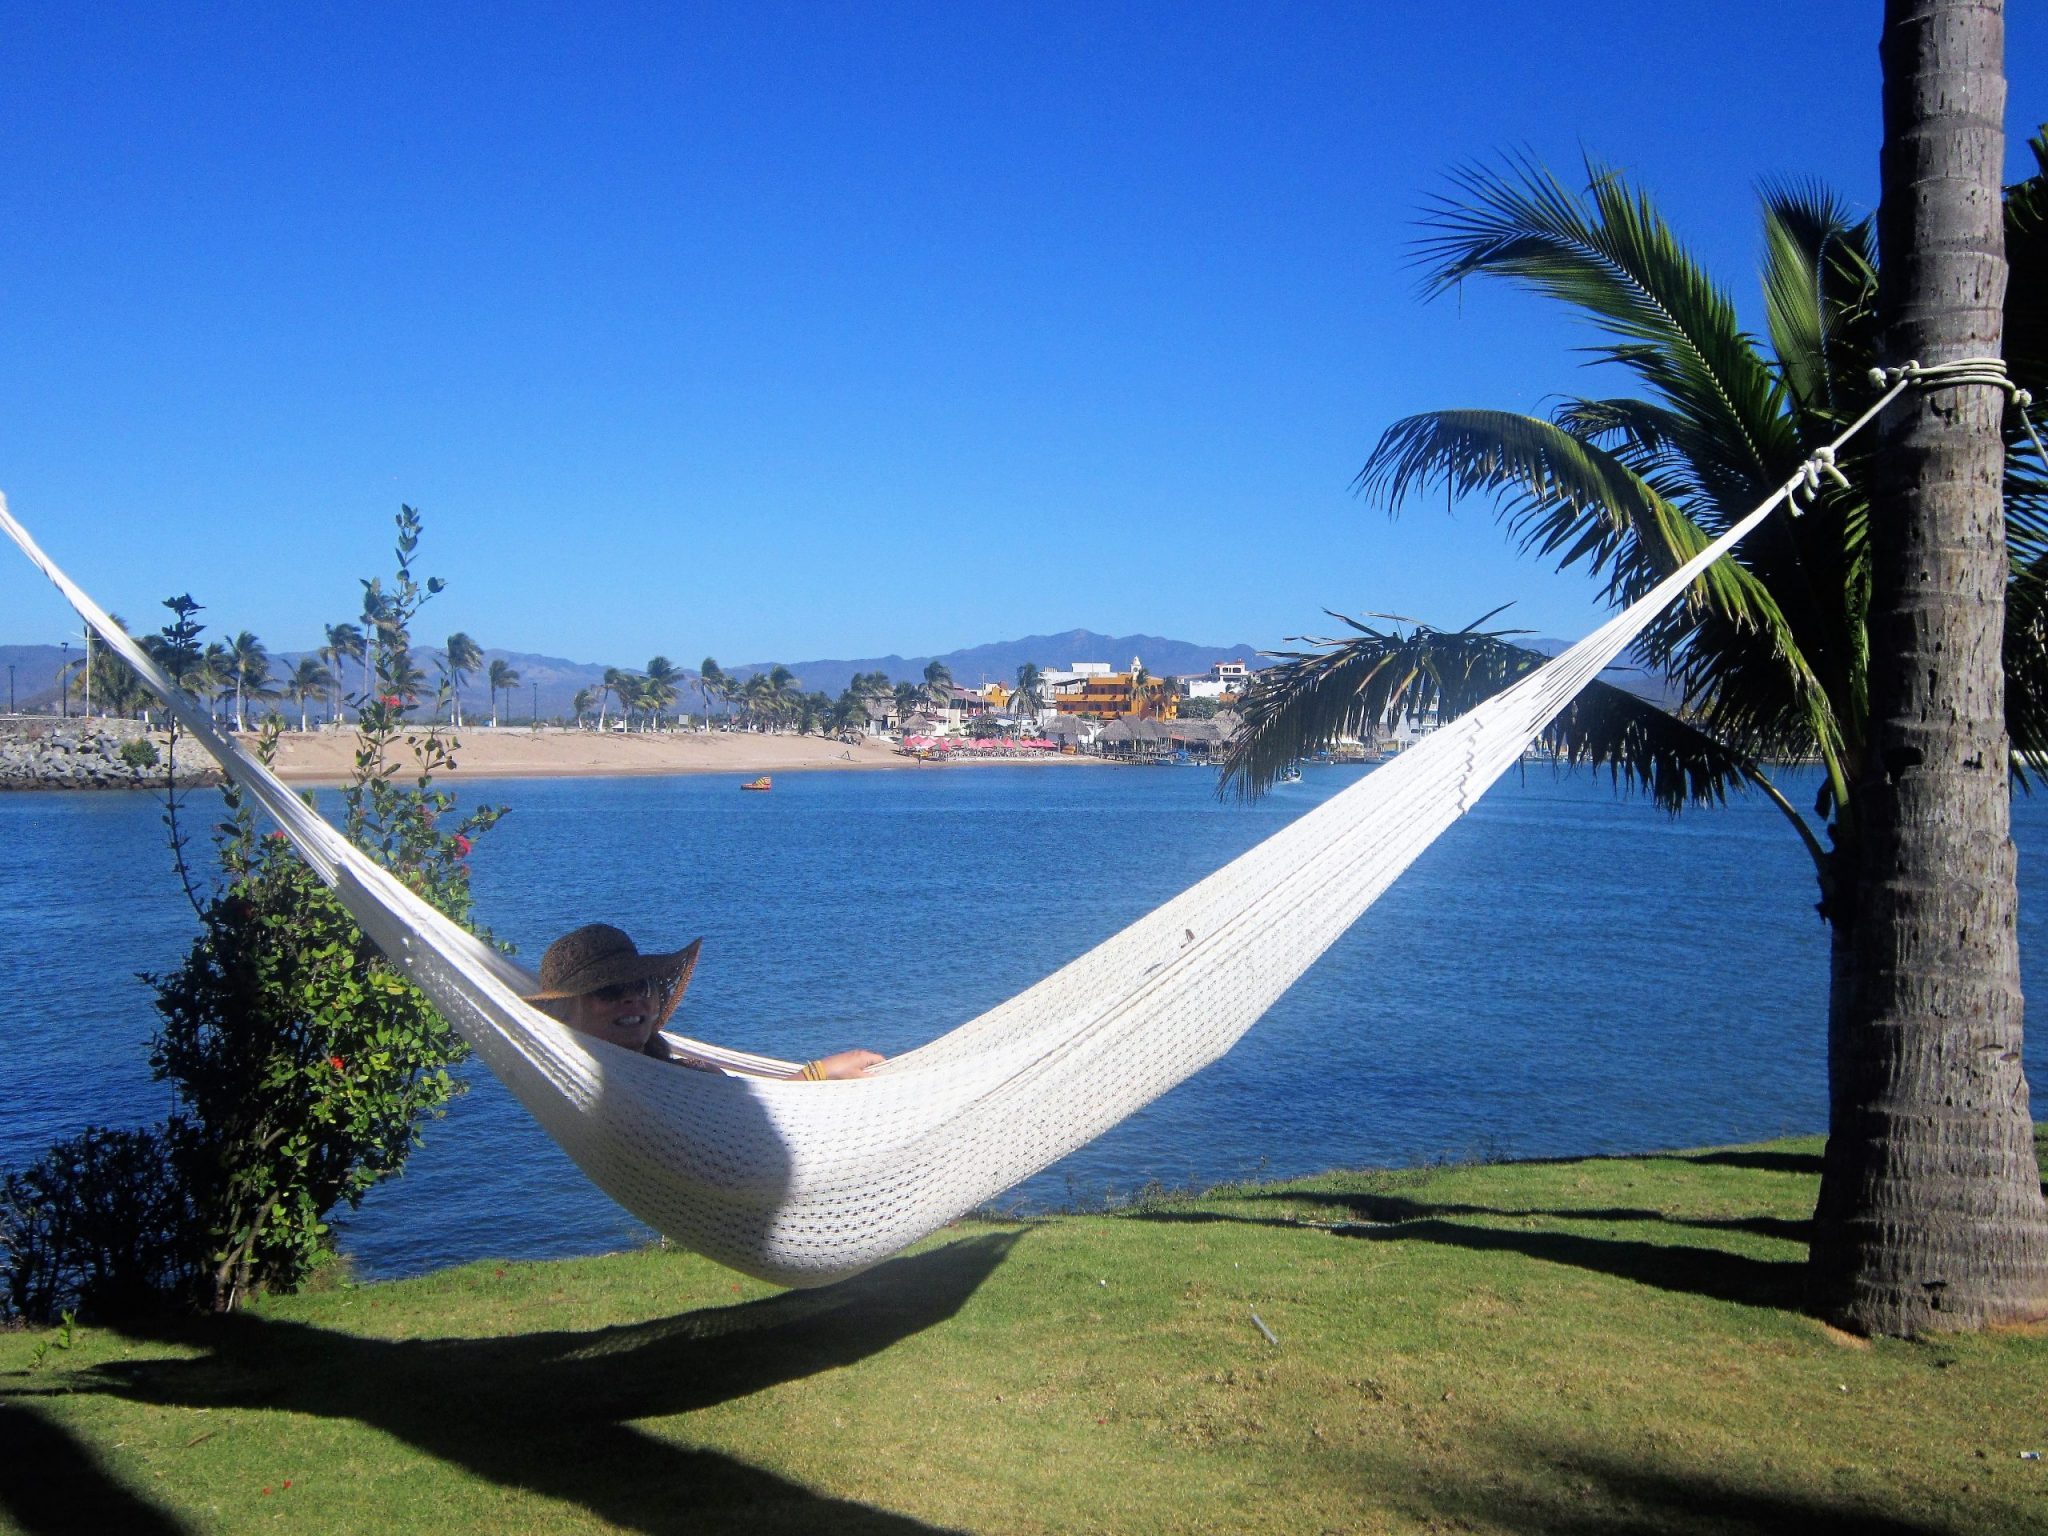 Ed's wife in a hammock at Barra de Navidad during their vacation in Mexico